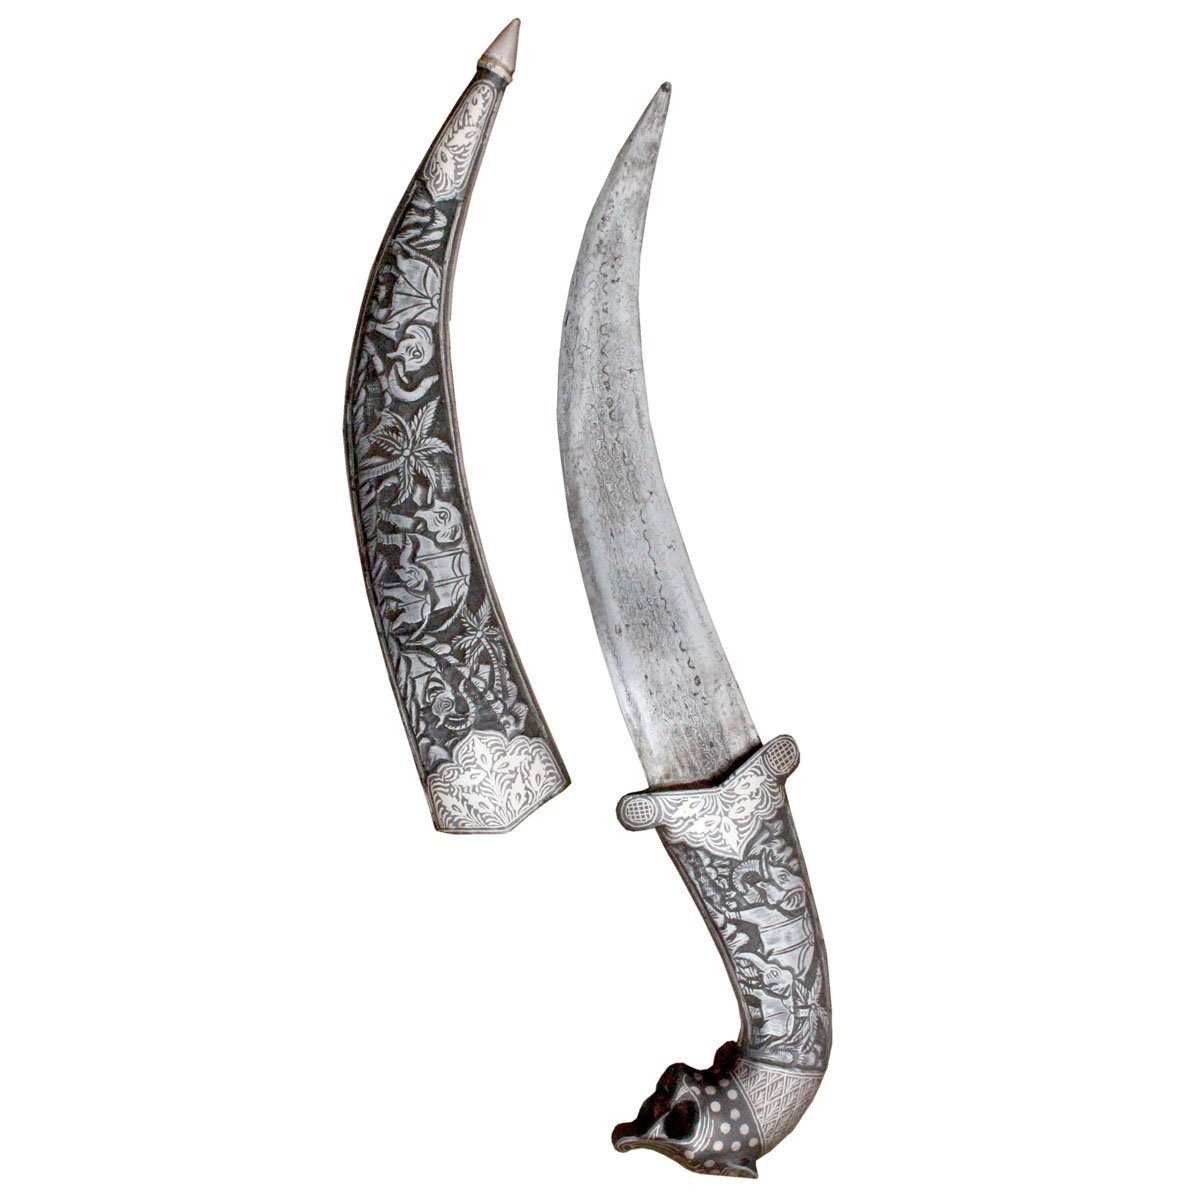 Dagger - Original Silver Inlay Art Work Mughal Dagger Bone Hand Fittings Shikar Hunting Knife - 15 Inches